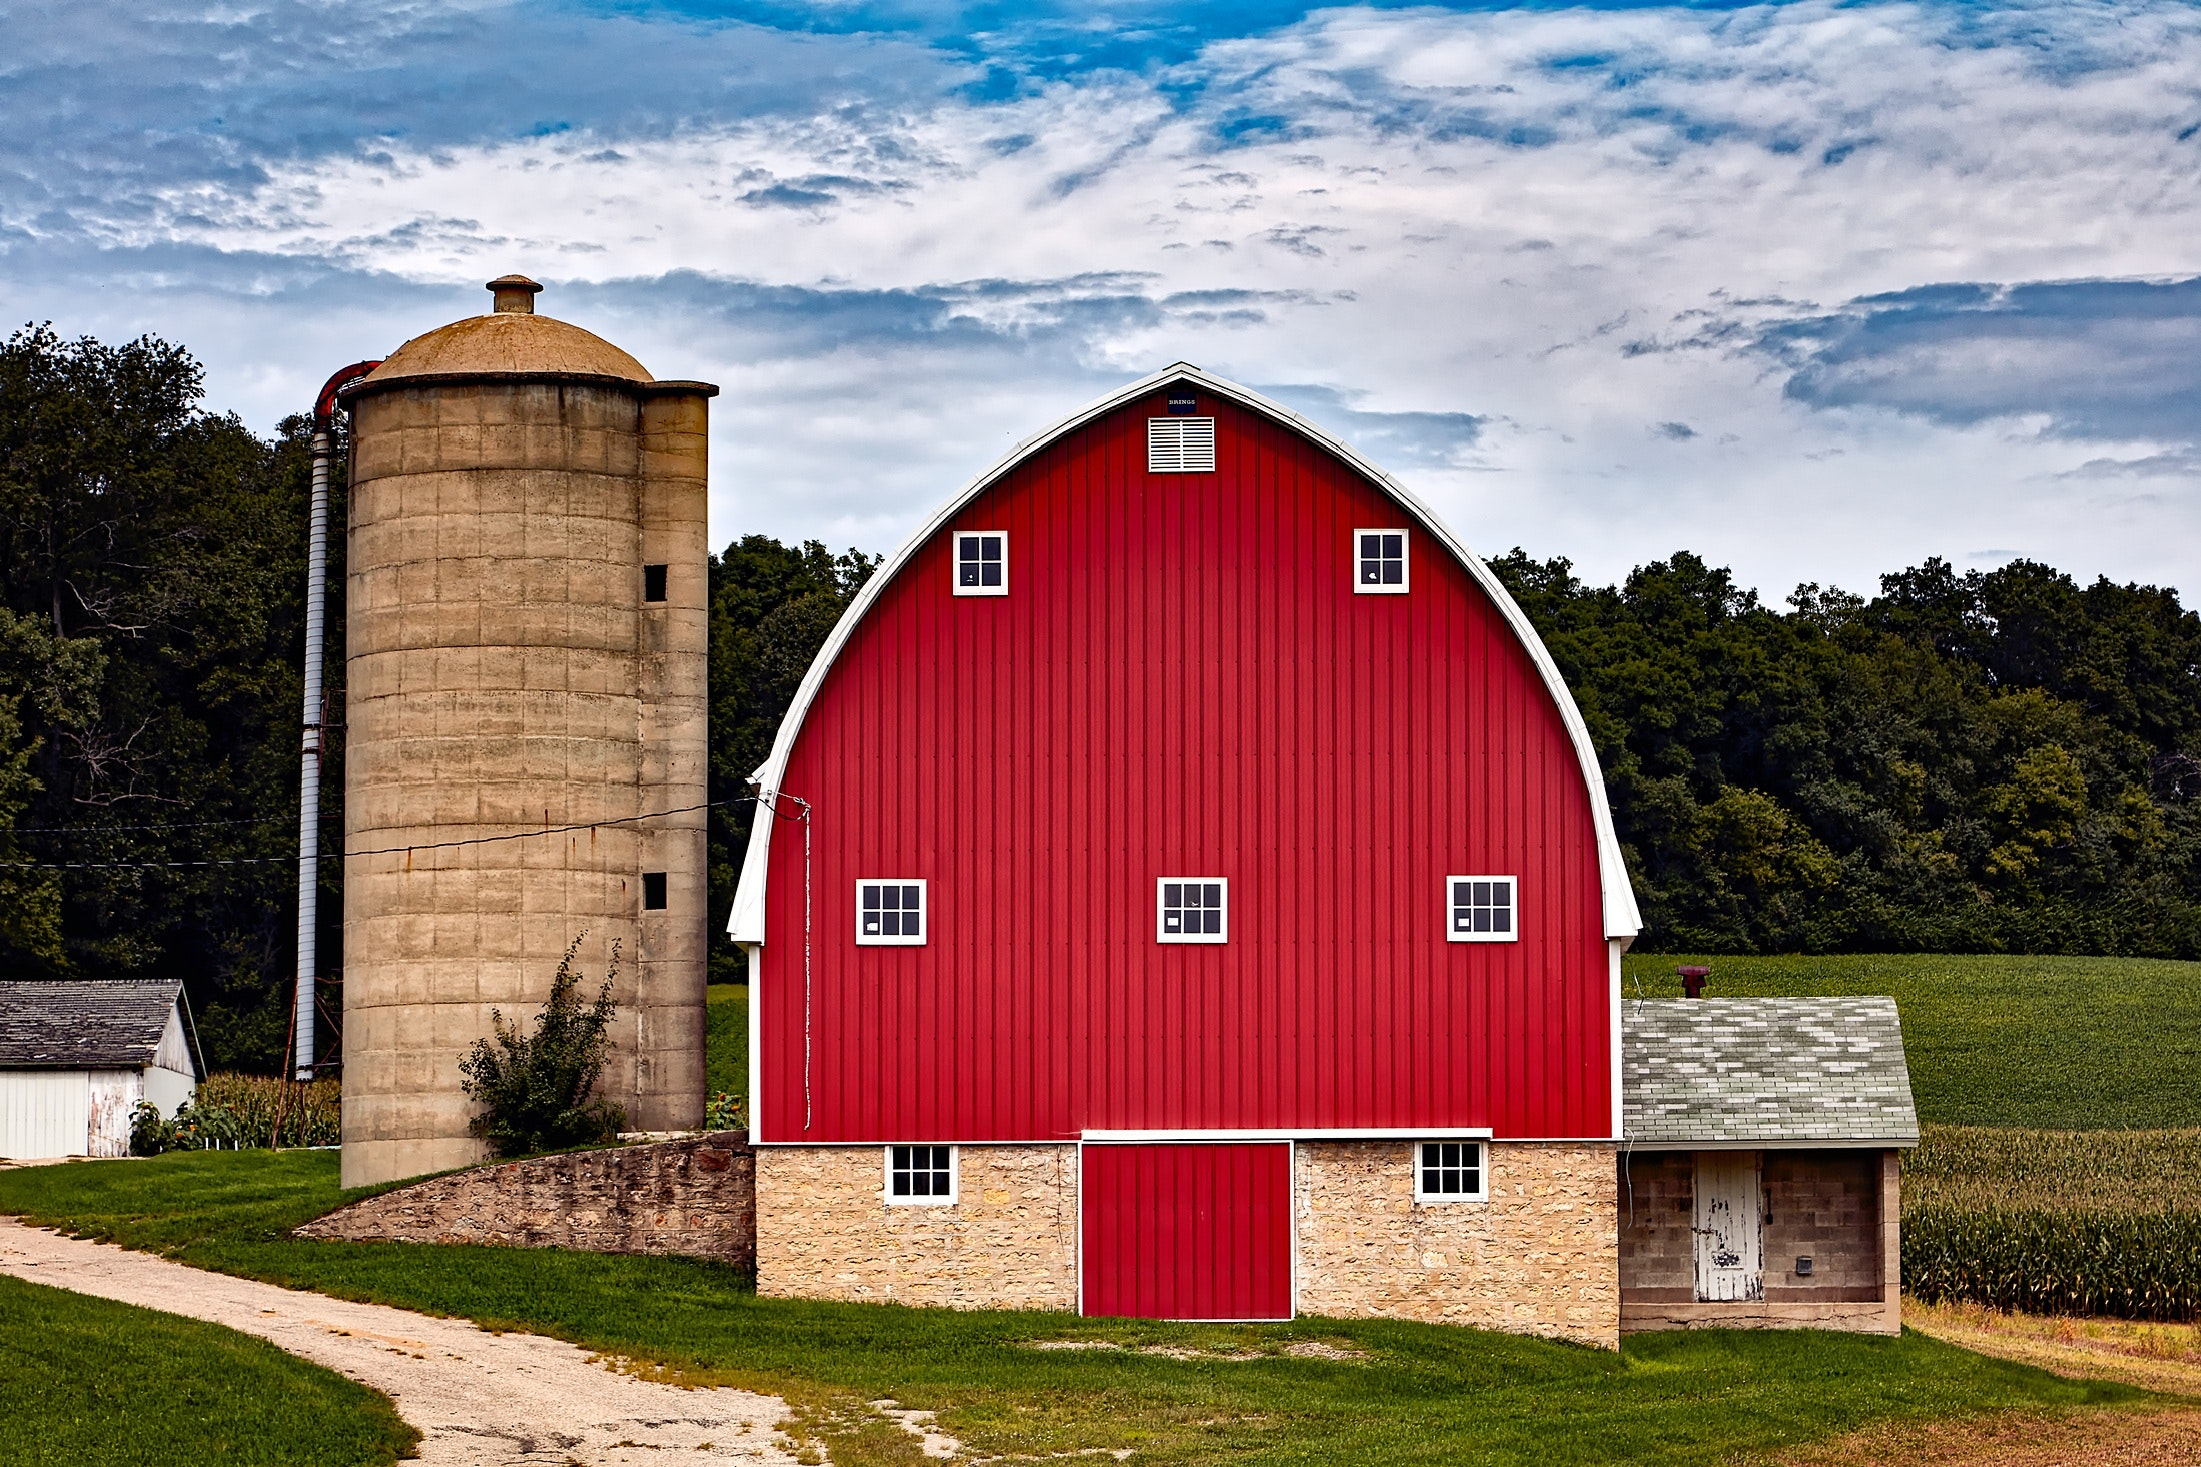 Red Built Structure Against Sky, Agriculture, House, Trees, Silo, HQ Photo